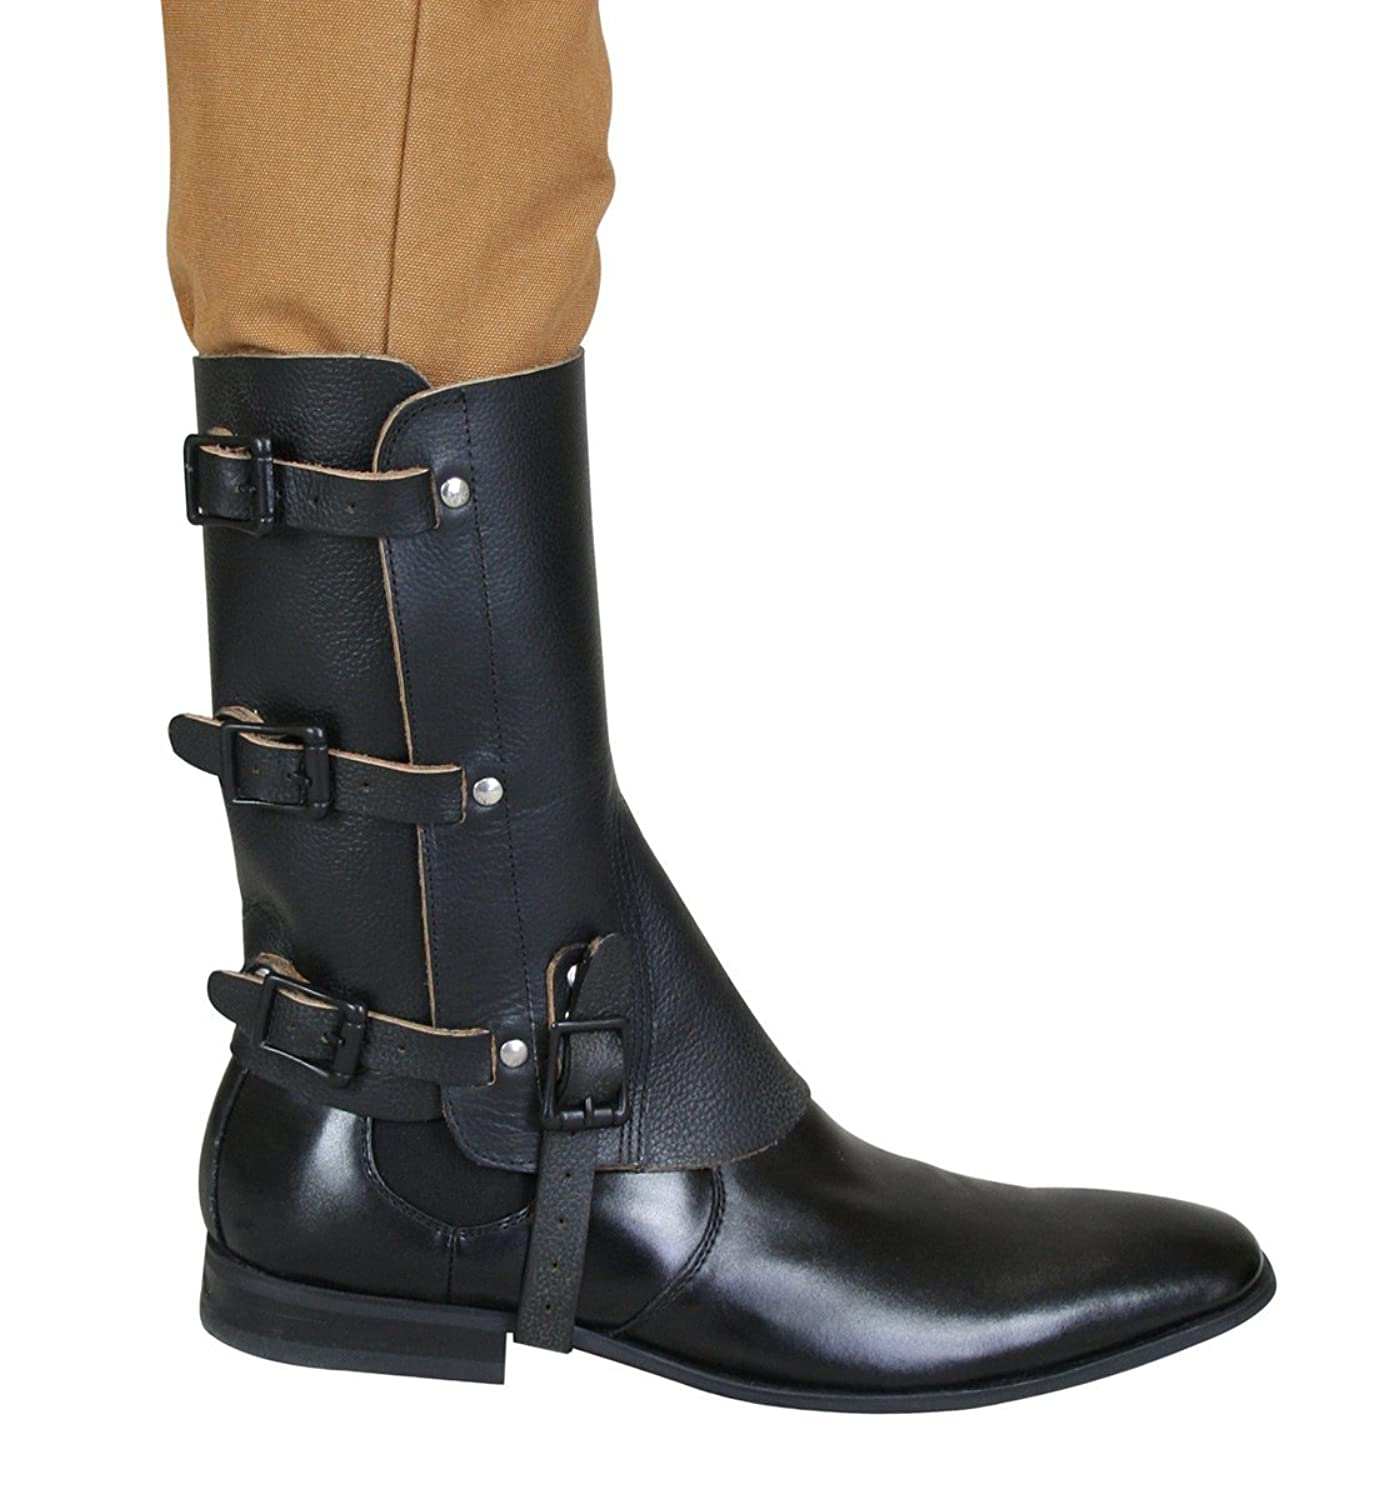 Vintage Boots, Retro Boots Historical Emporium Mens Deluxe Leather Military Gaiters $49.95 AT vintagedancer.com